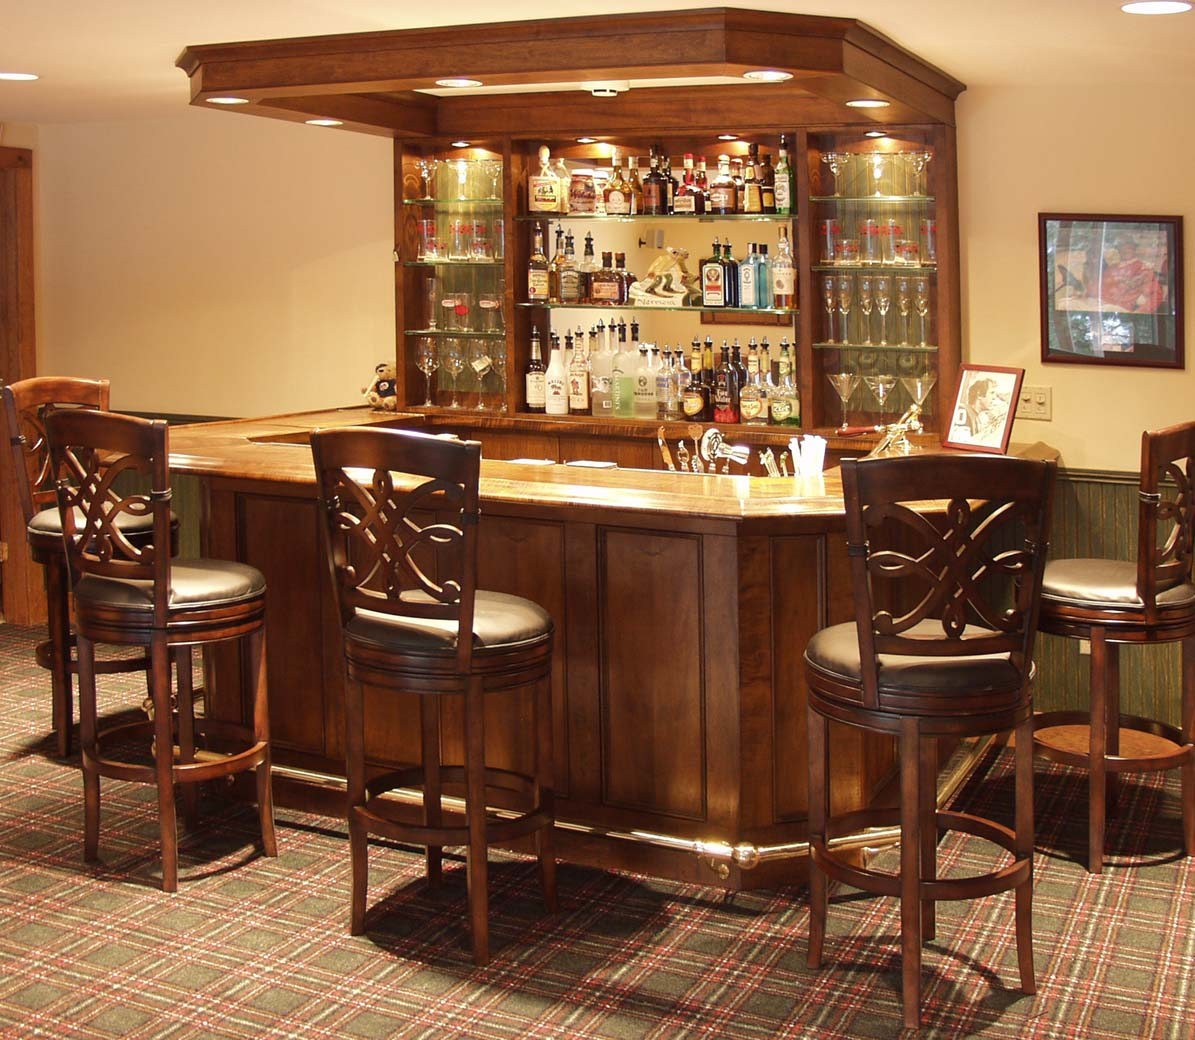 Home Bar Setup Ideas - Home & Furniture Design - Kitchenagenda.com